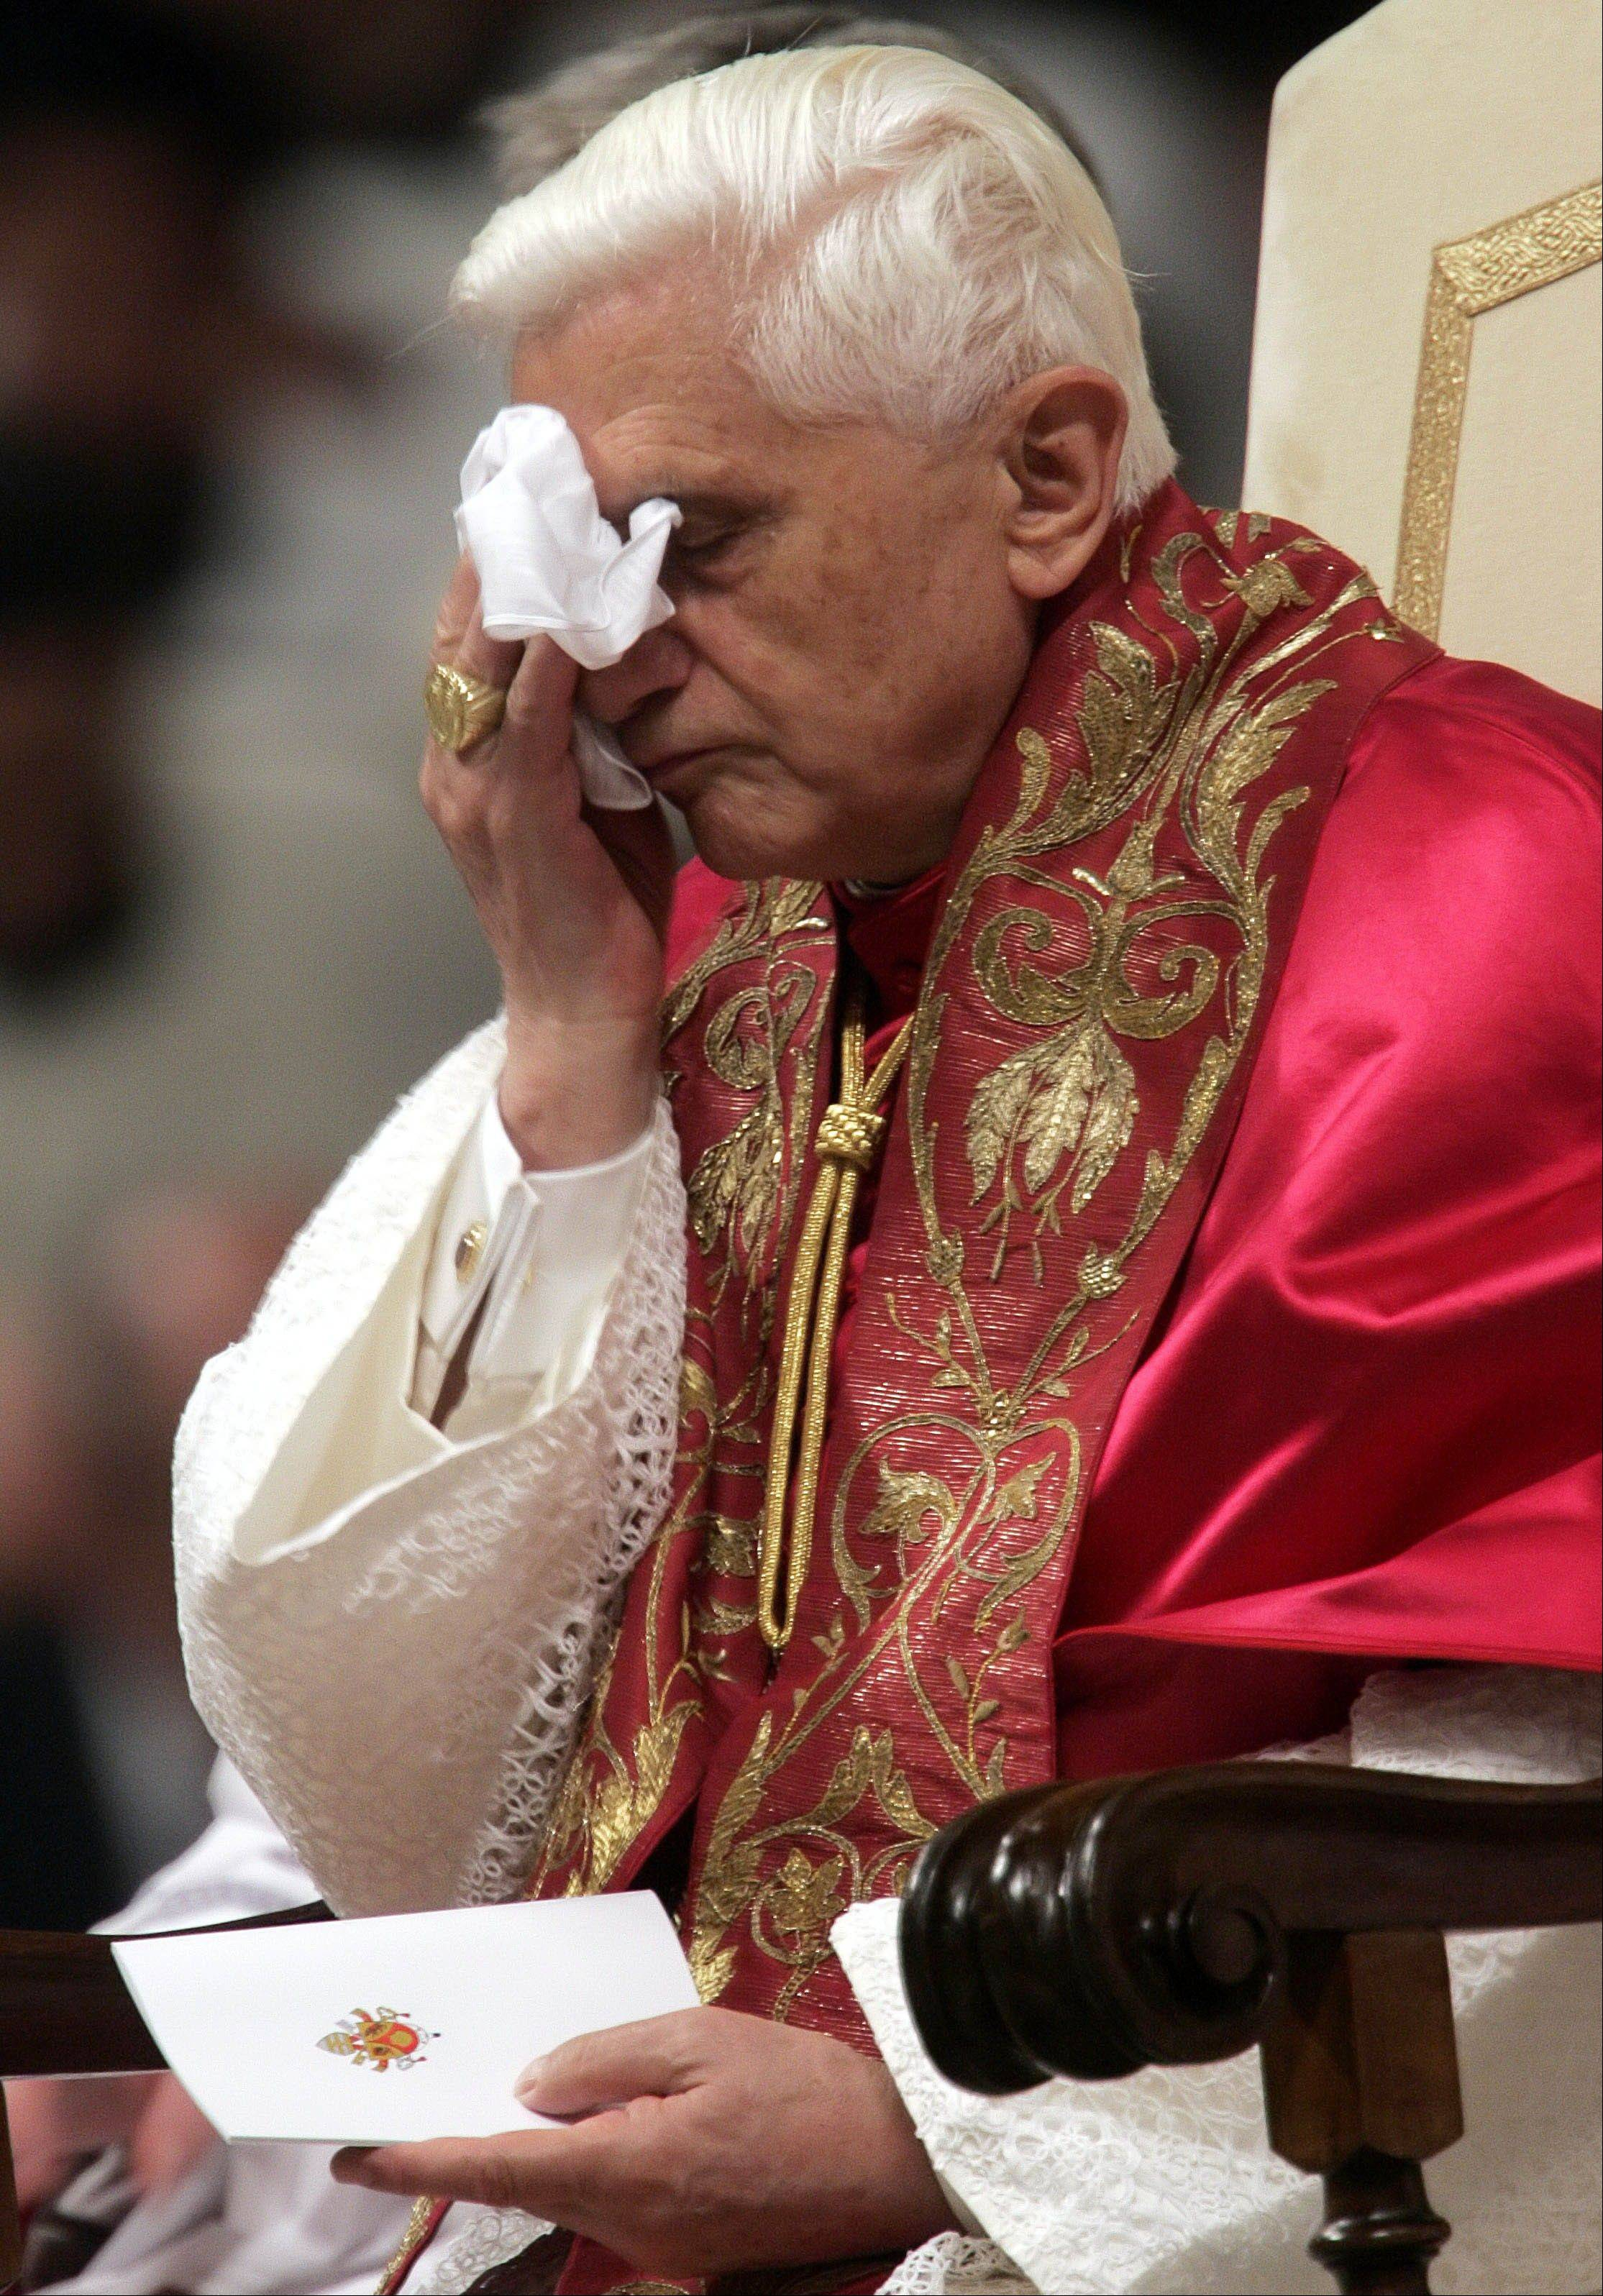 Pope Benedict XVI wipes his face during a solemn adoration of the Eucharist in St. Peter's Basilica at the Vatican.